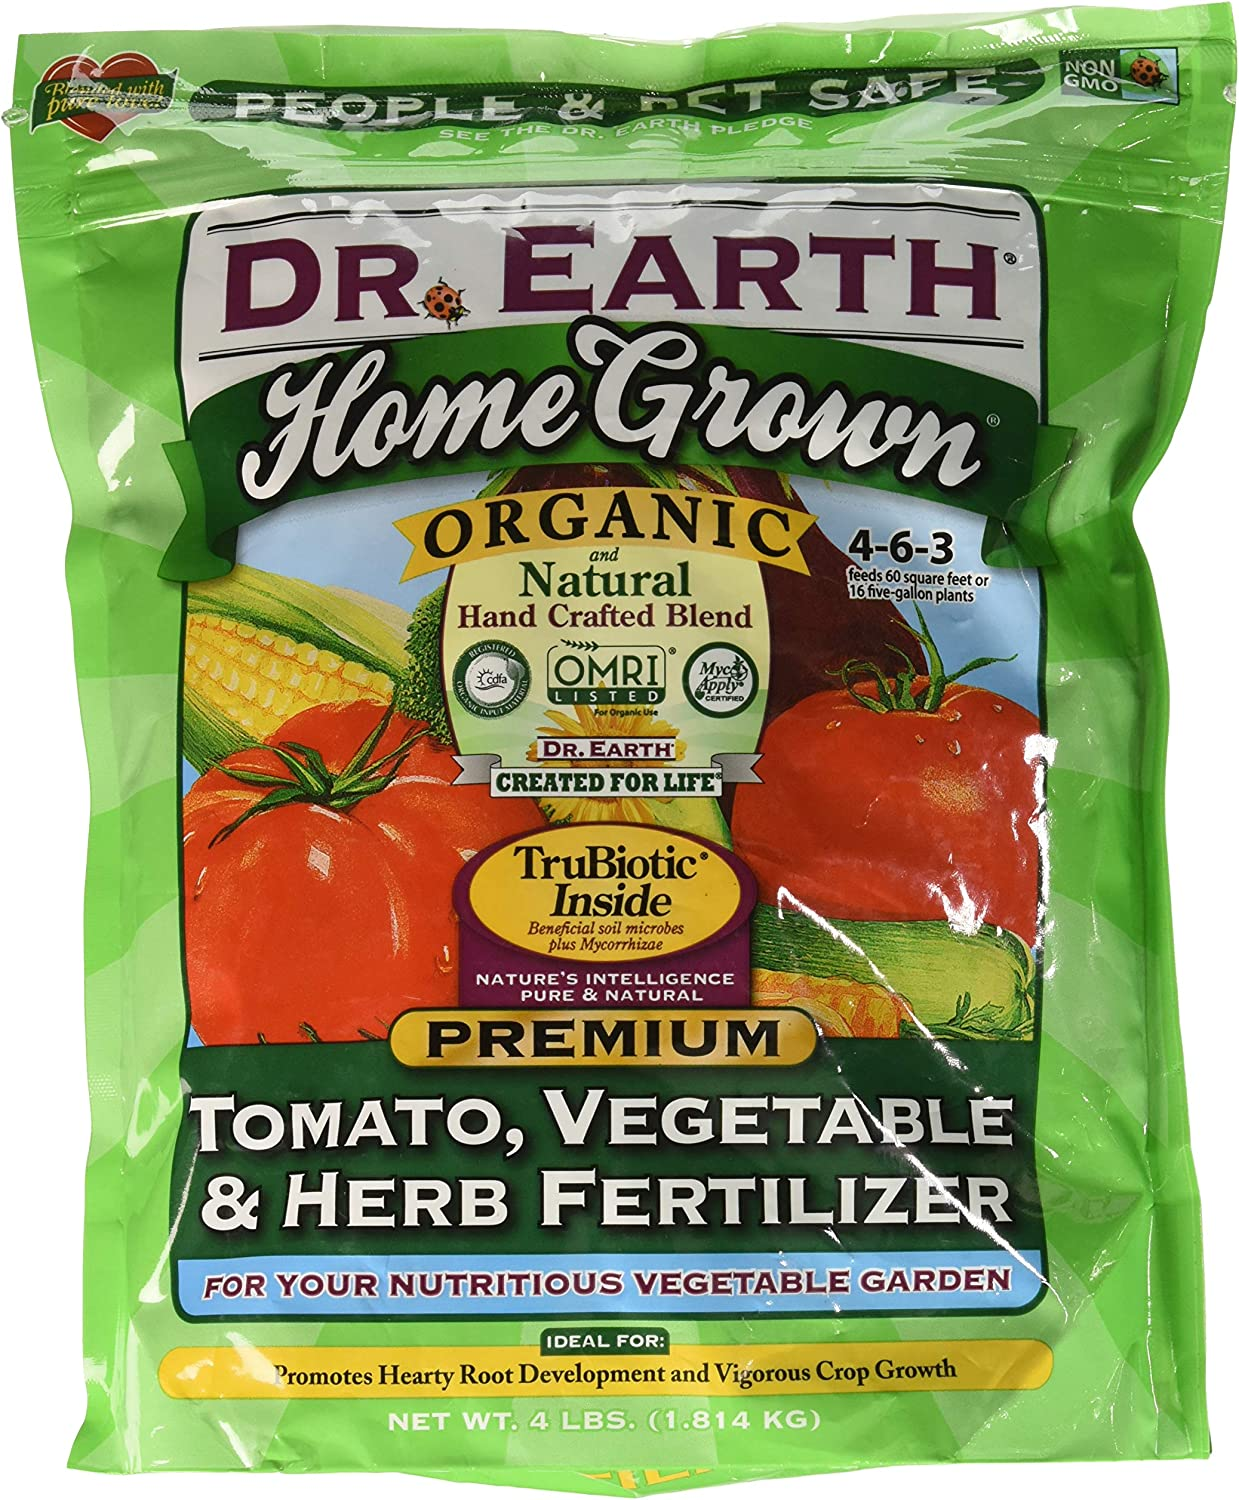 Dr. Earth Organic 5 Tomato, Vegetable & Herb Fertilizer to amend soil